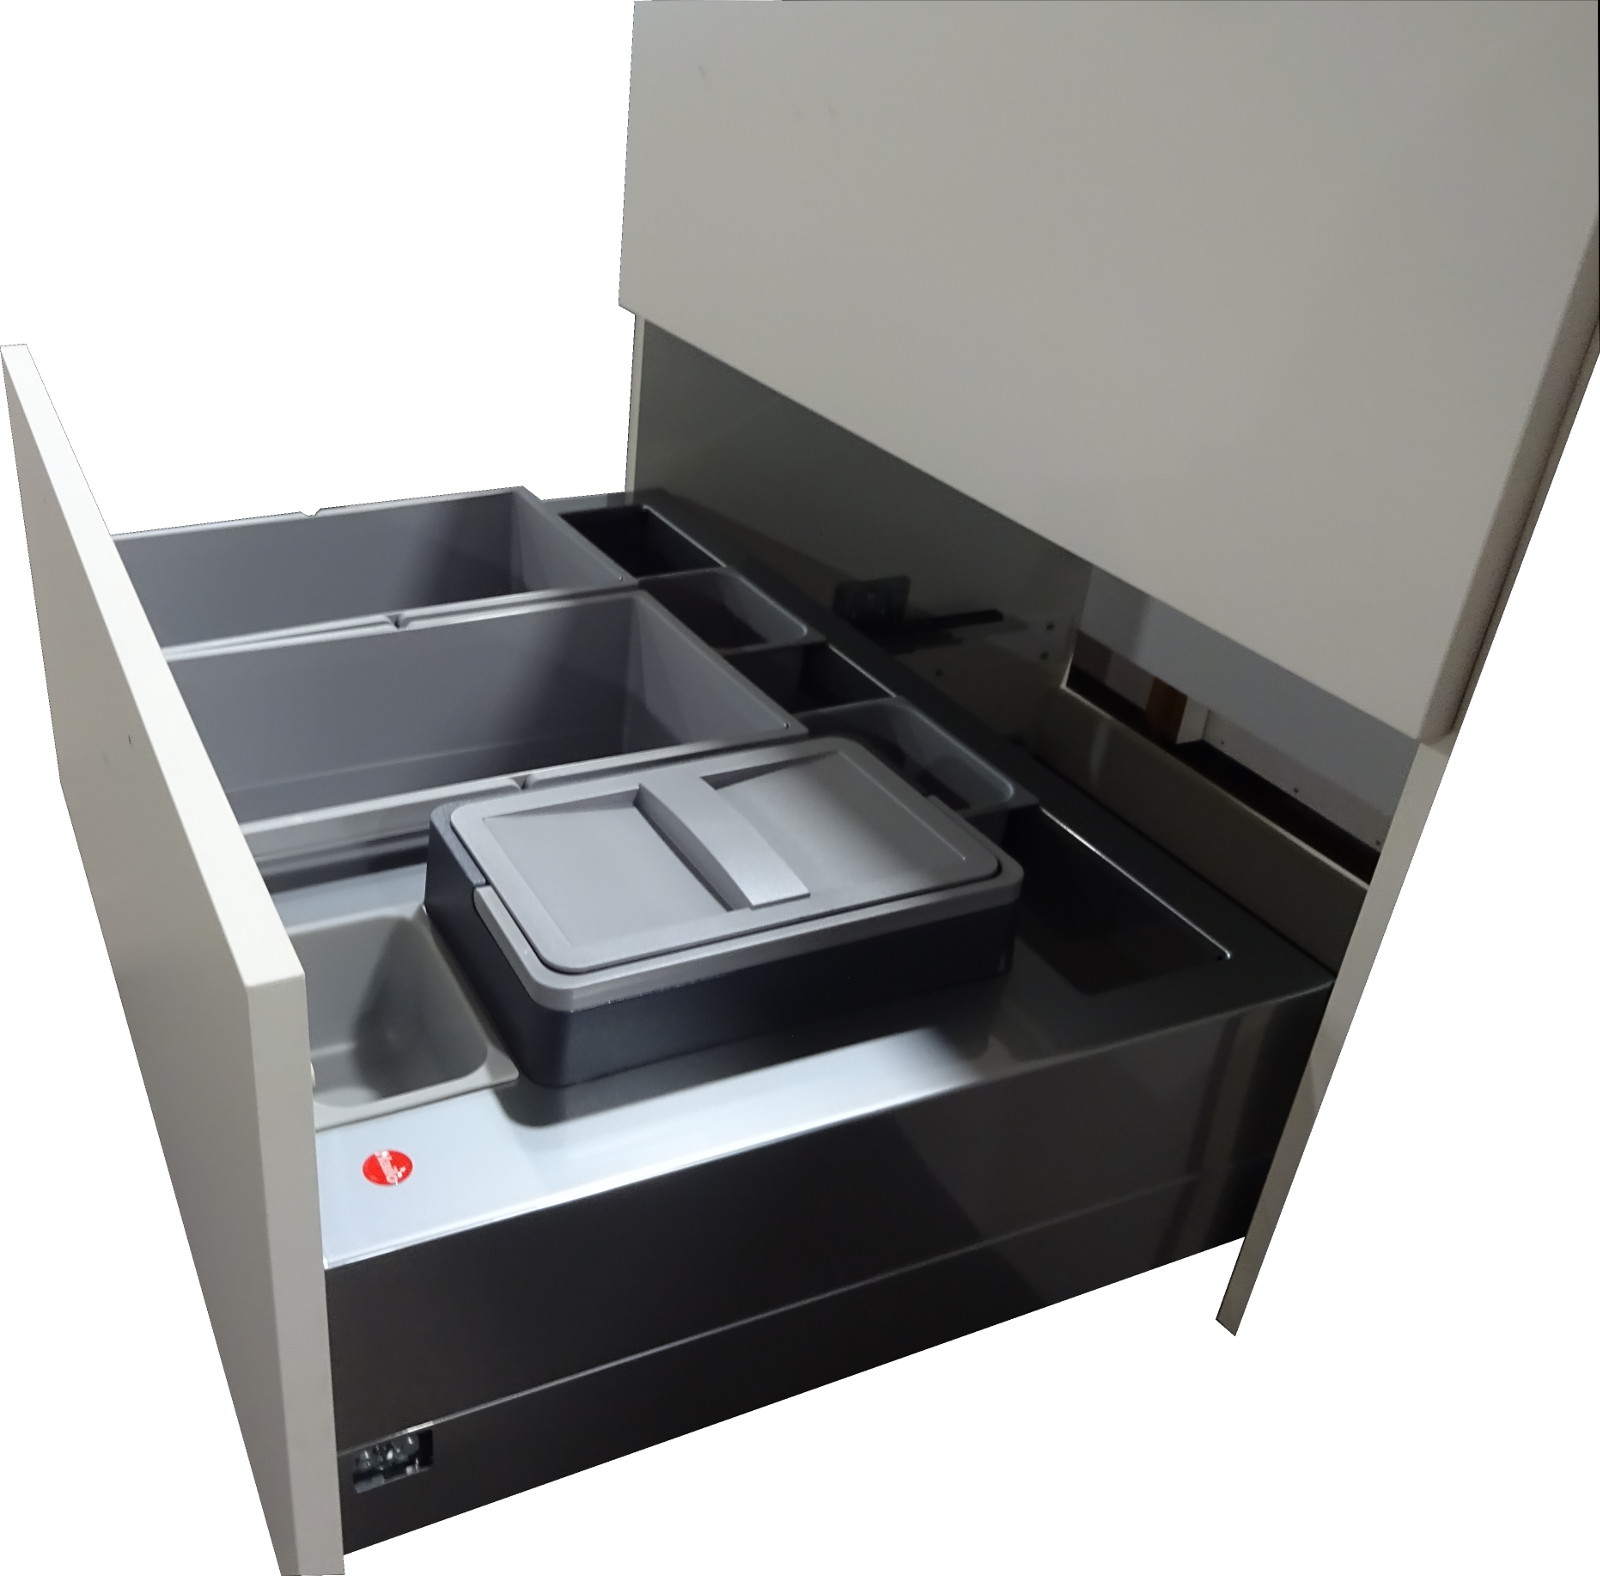 hailo m lltrennung separato 3612 87 m lleimer abfallsammler auszug k che ebay. Black Bedroom Furniture Sets. Home Design Ideas